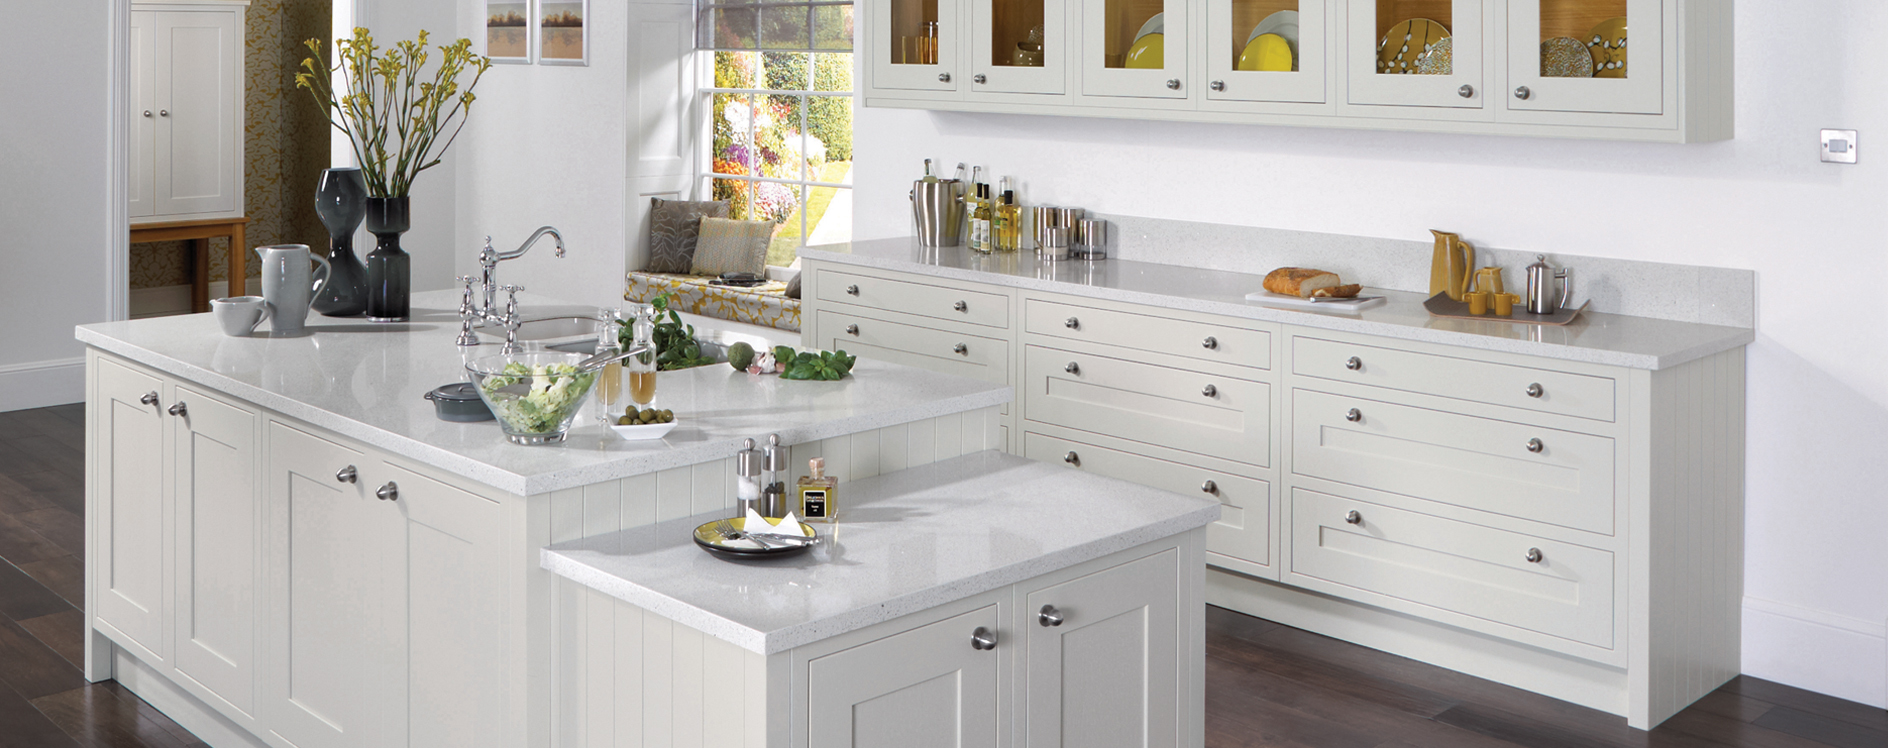 petworth-painted-french-grey-880-45